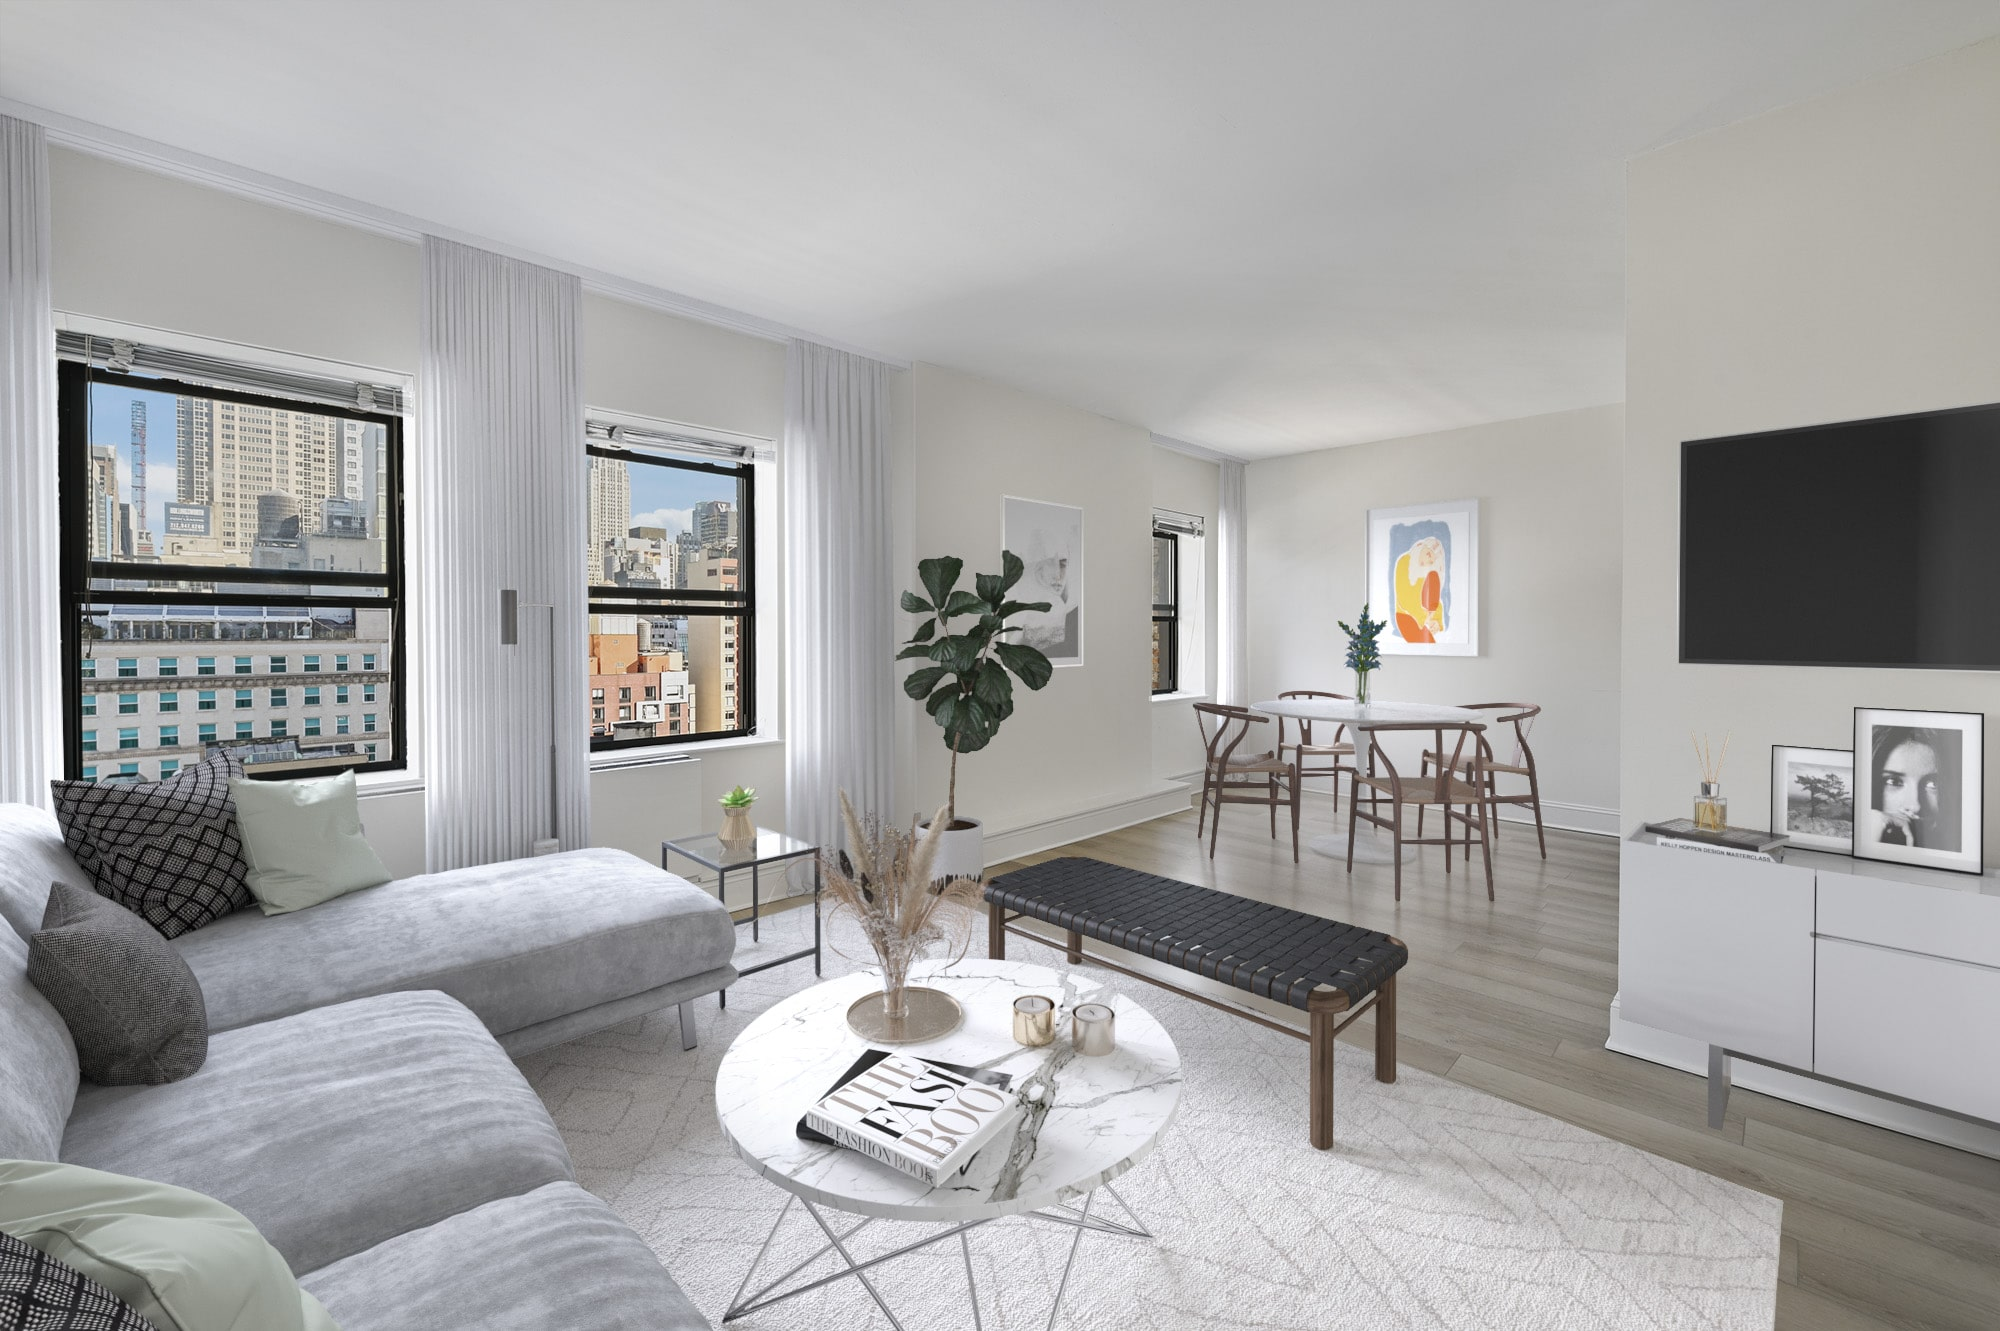 Studio apartment with open layout